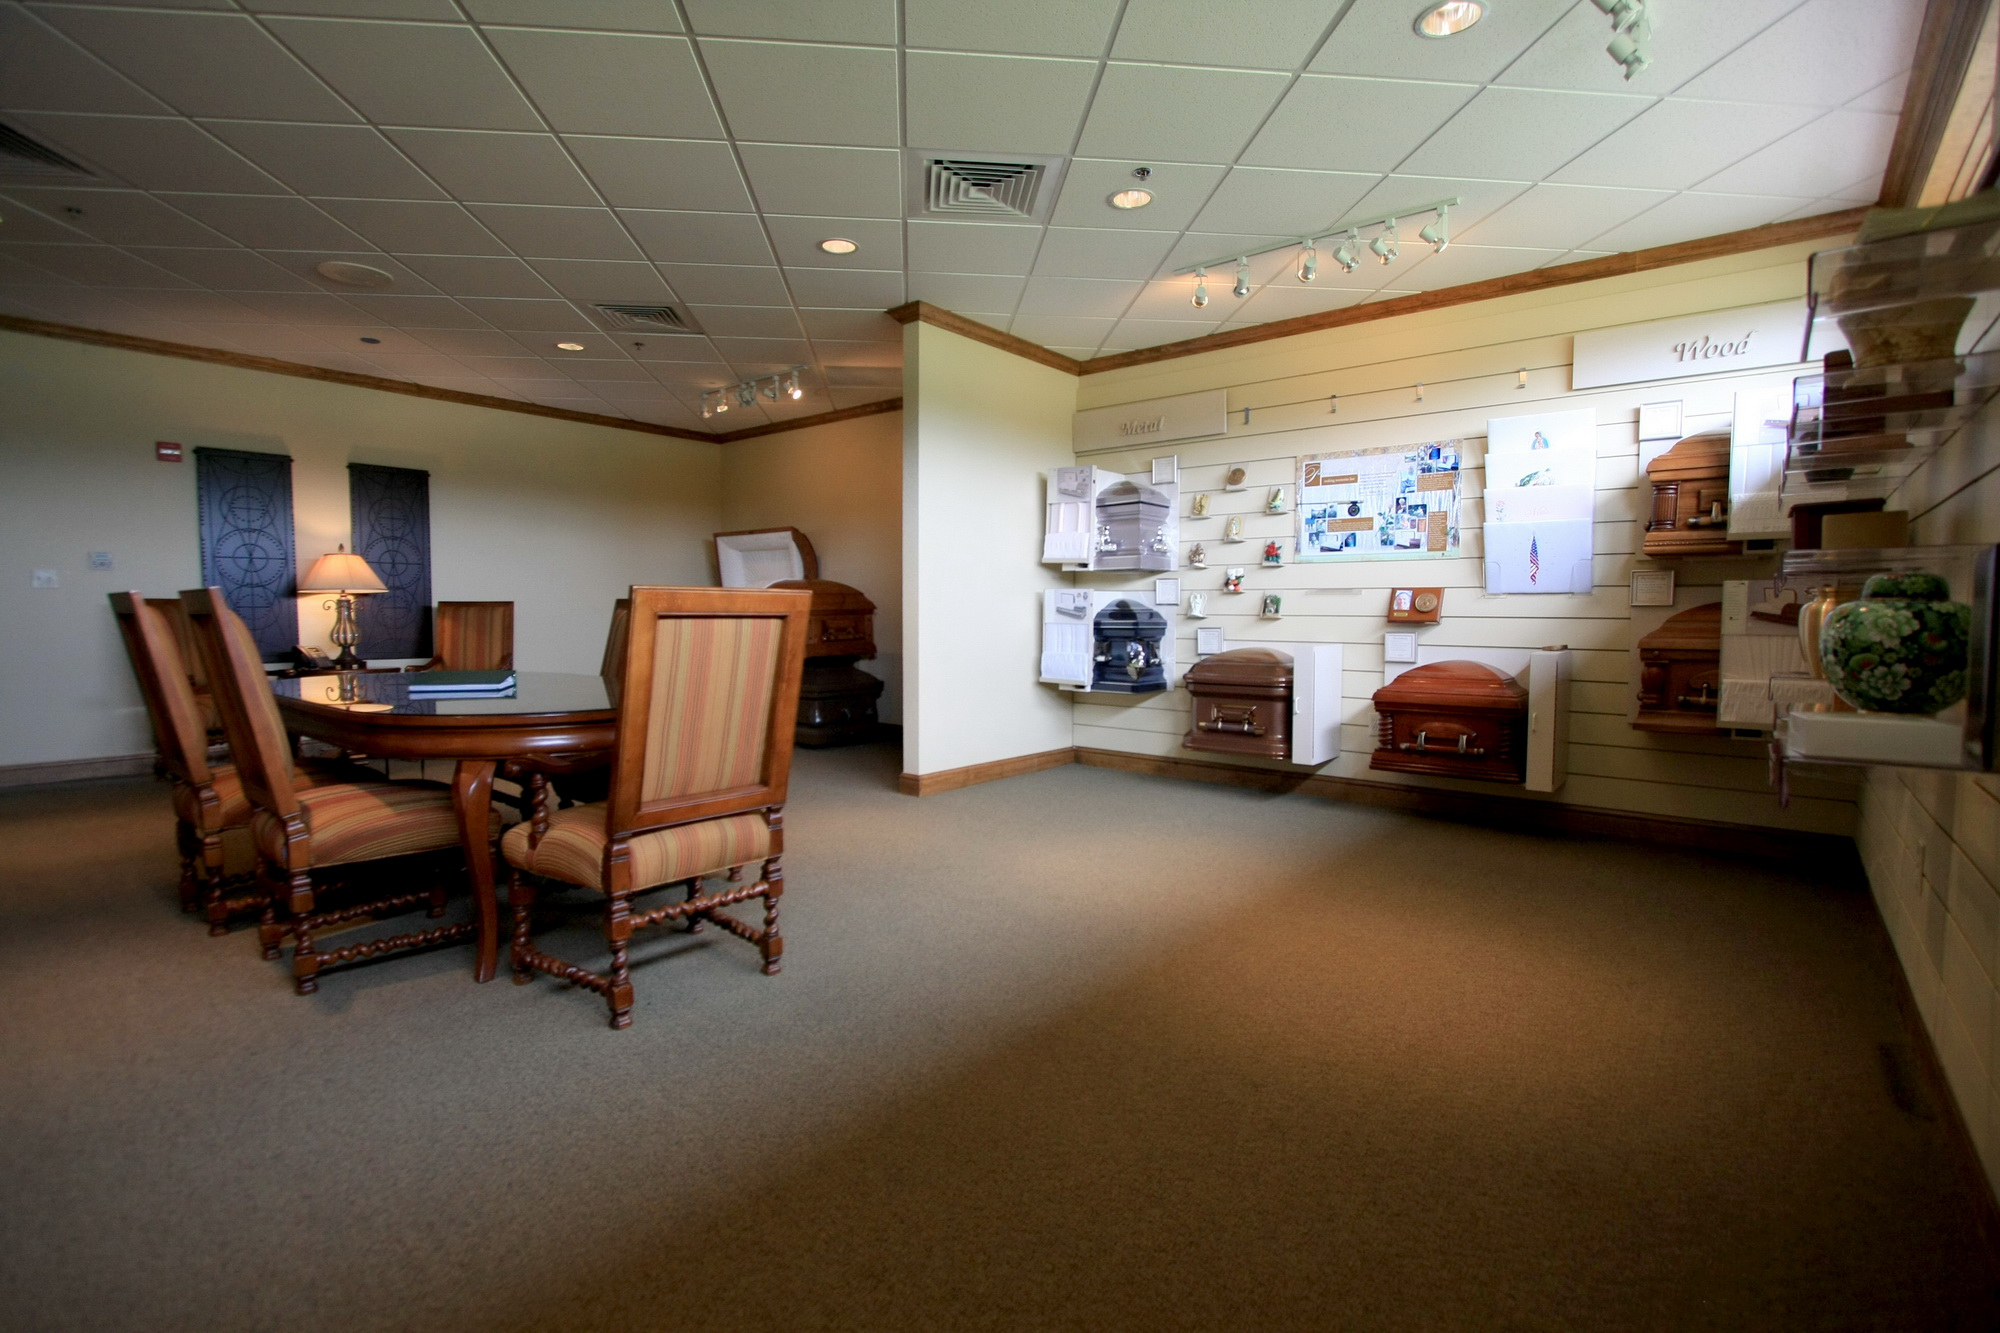 Funeral home interior design 28 images cypress lawn funeral home jst architects cypress - Funeral home interior design ...